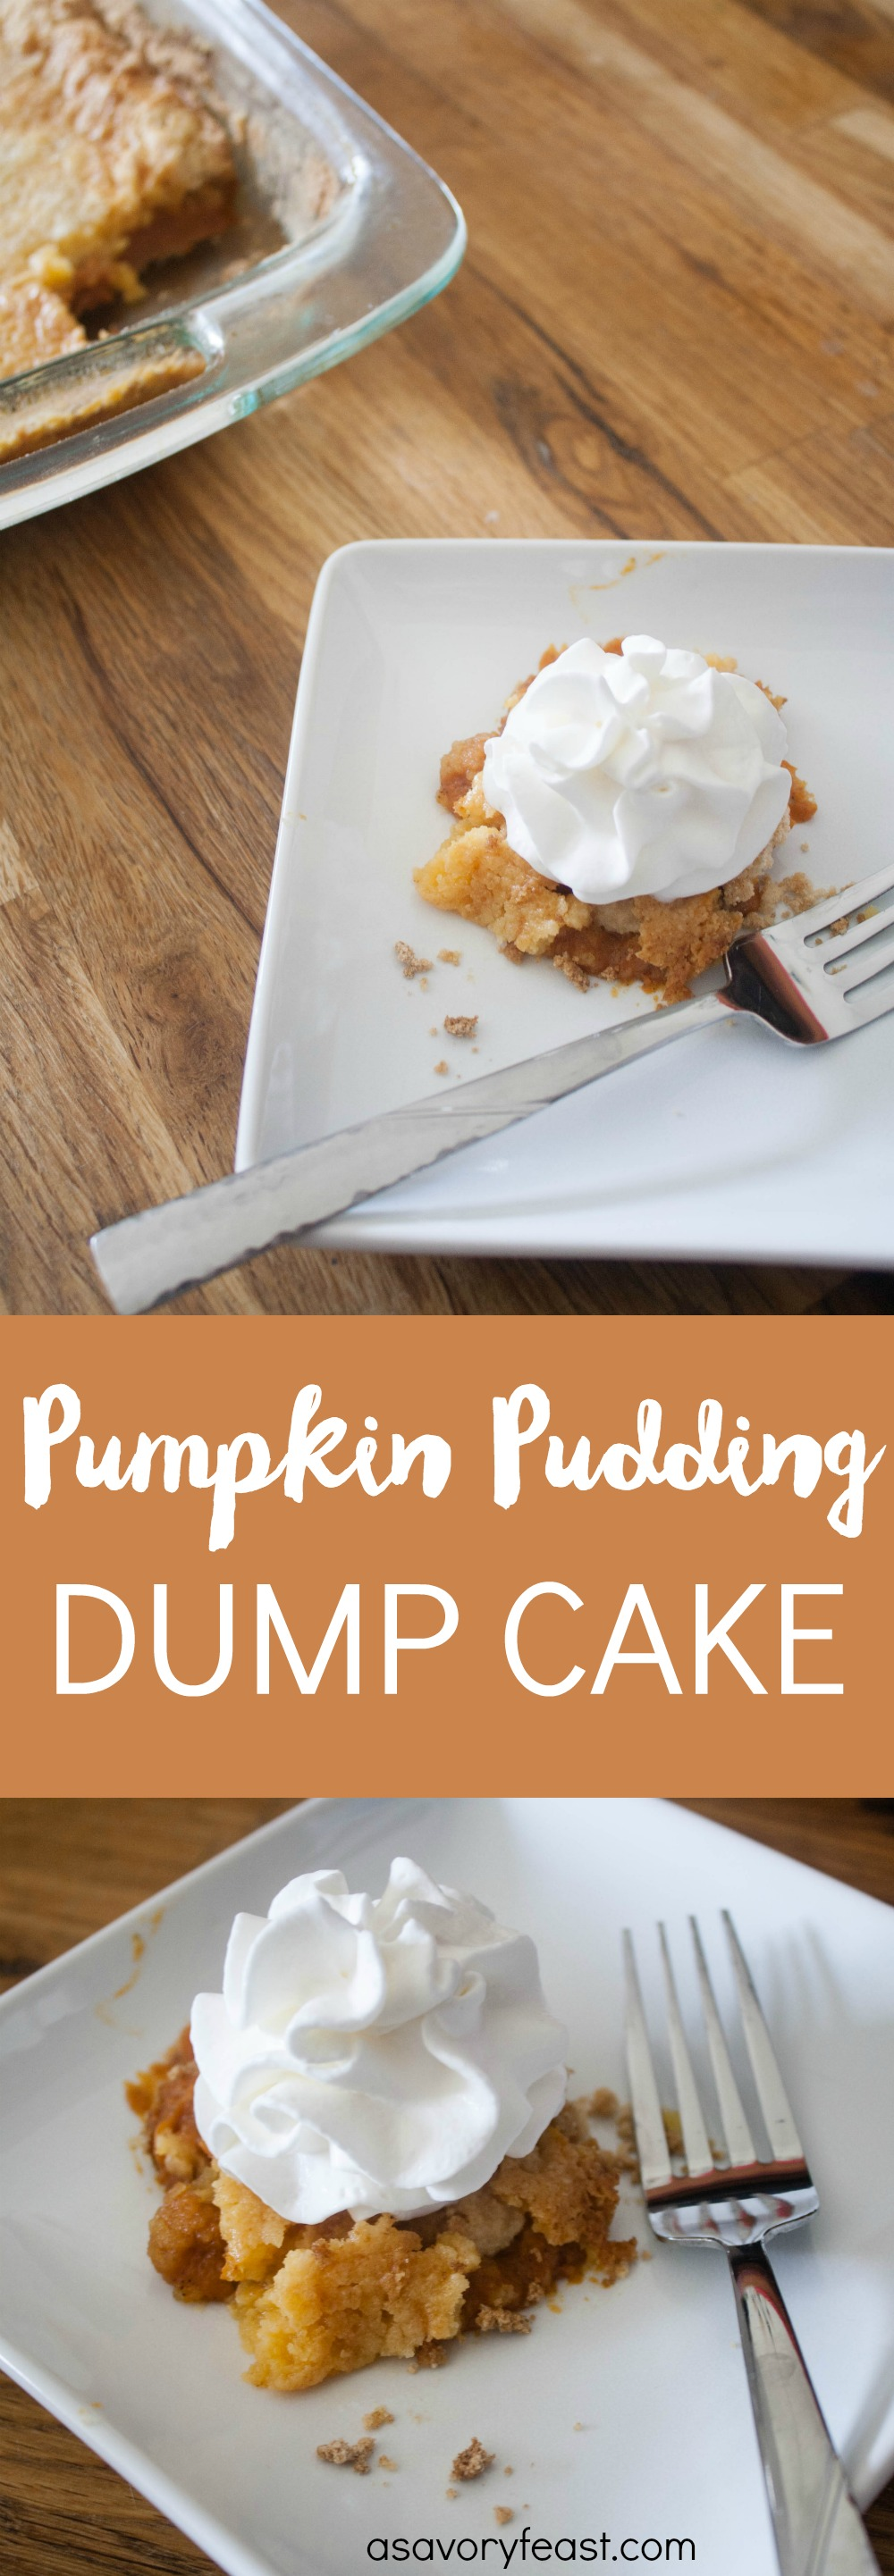 Tis the season for pumpkin everything! This Pumpkin Pudding Dump Cake is the easiest Fall dessert ever! Made with just a few easy ingredients including pumpkin puree, a cake mix and a pudding mix. This yummy cake is best served warm with a scoop of vanilla ice cream or a dollup of whipped cream.